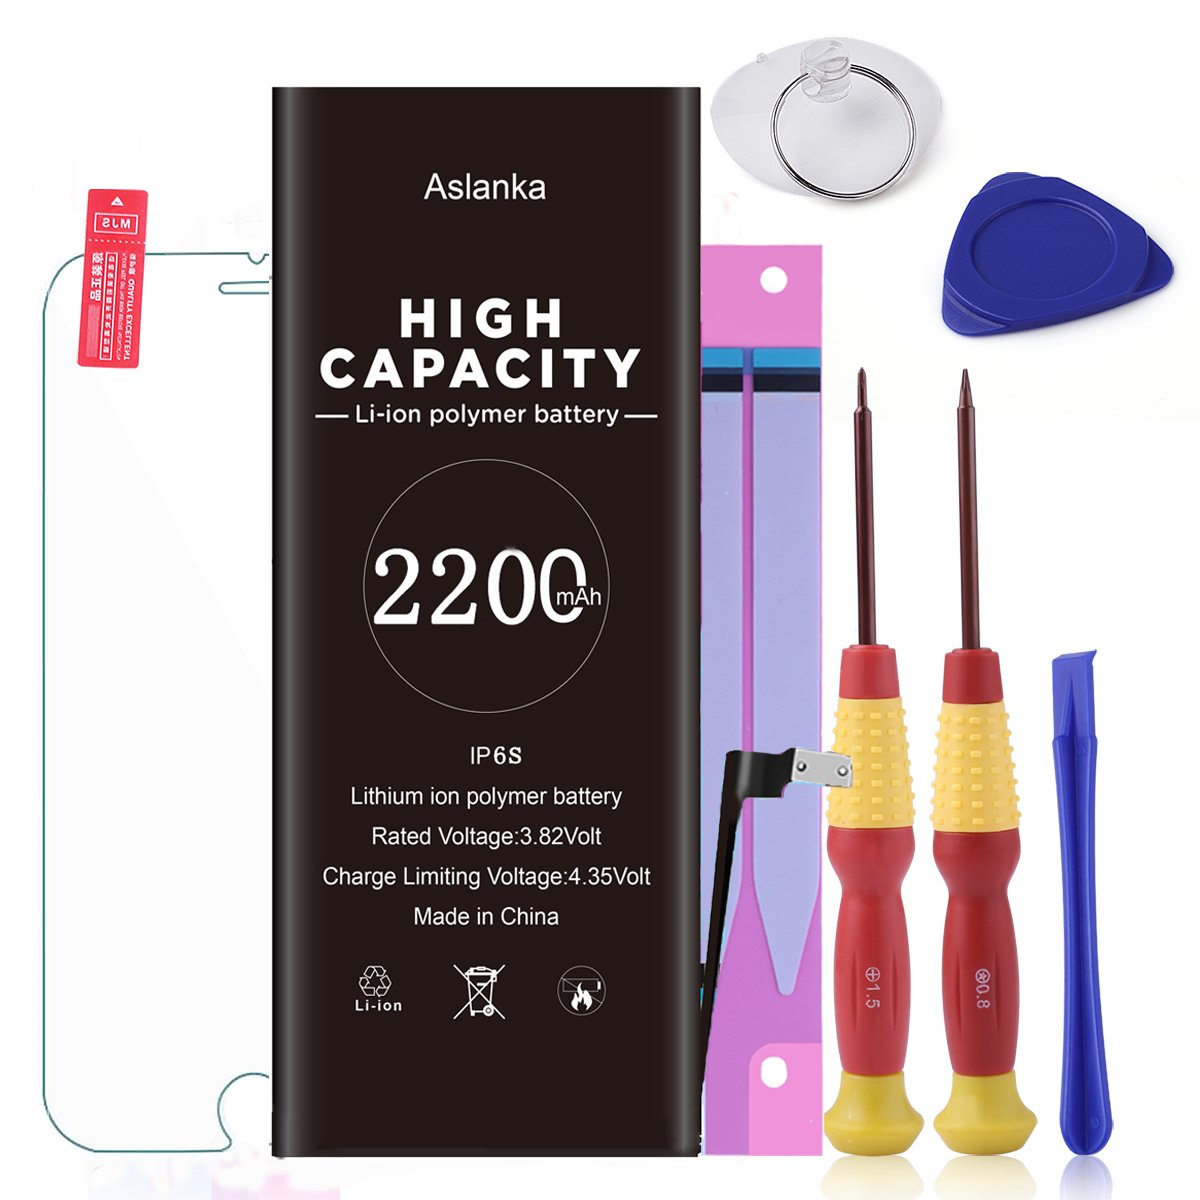 Aslanka Battery for iphone 6s, Brand New 0 Cycle of 2200 mAh Replacement Battery , Full Set of Repair Tools Include Adhesive & Instruction and Screen Protector -[2 Year Warranty]